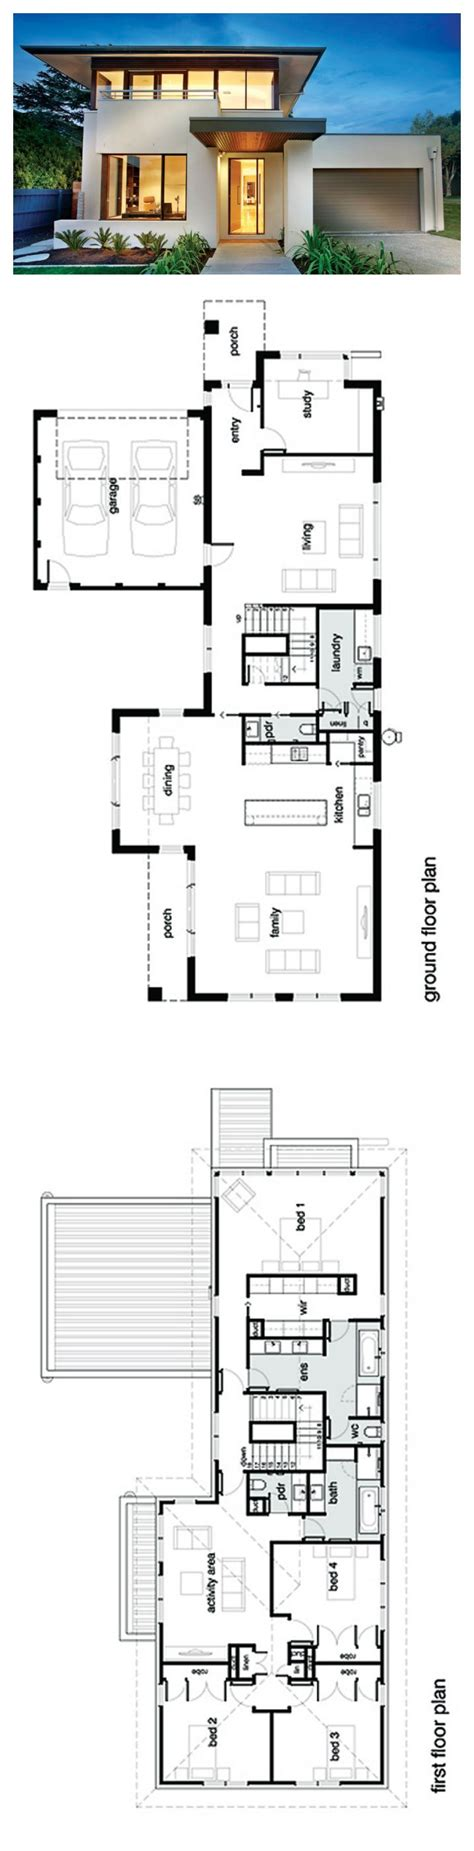 contemporary home floor plans the 25 best ideas about modern house plans on pinterest